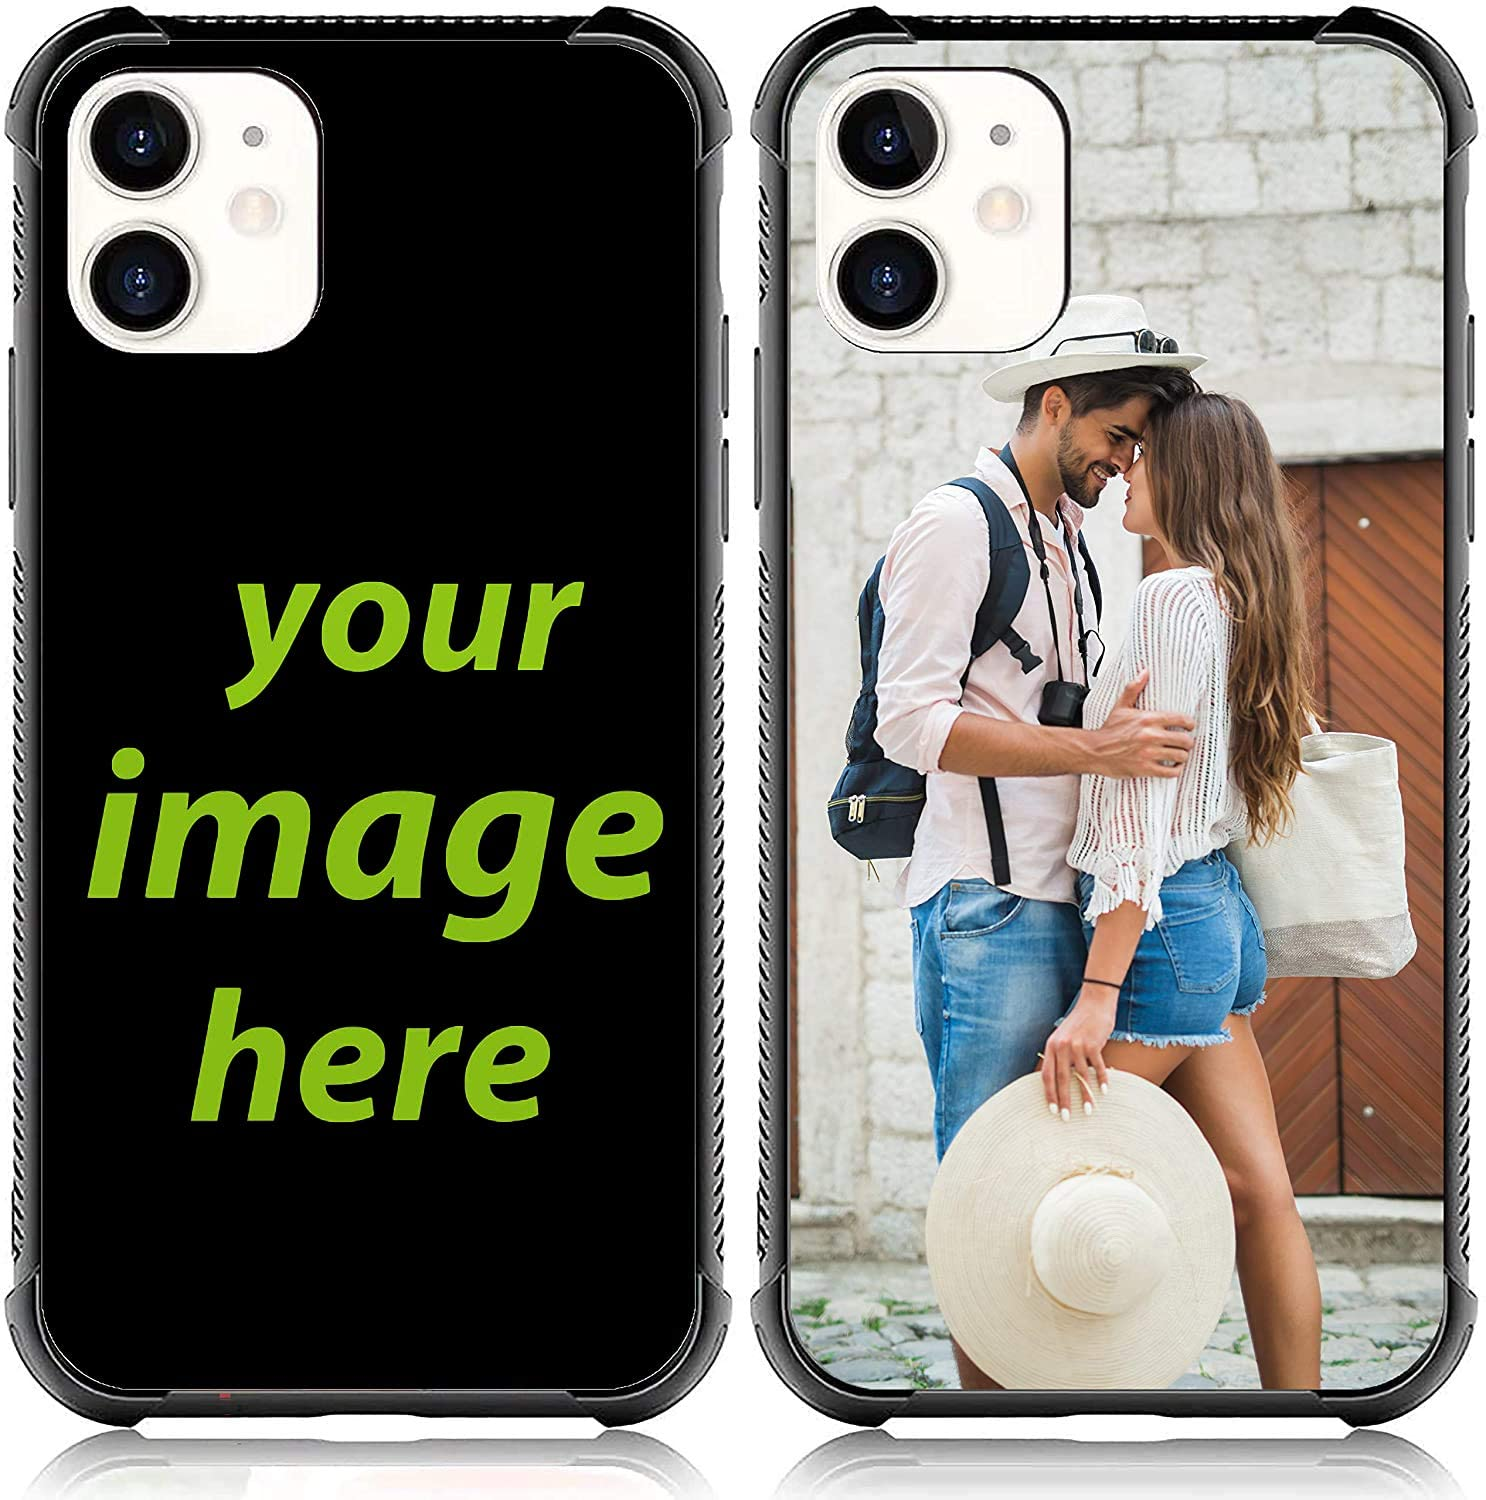 Customized Case for iPhone Samsung Personalized Custom Picture Phone Case Make Your Own Phone Case